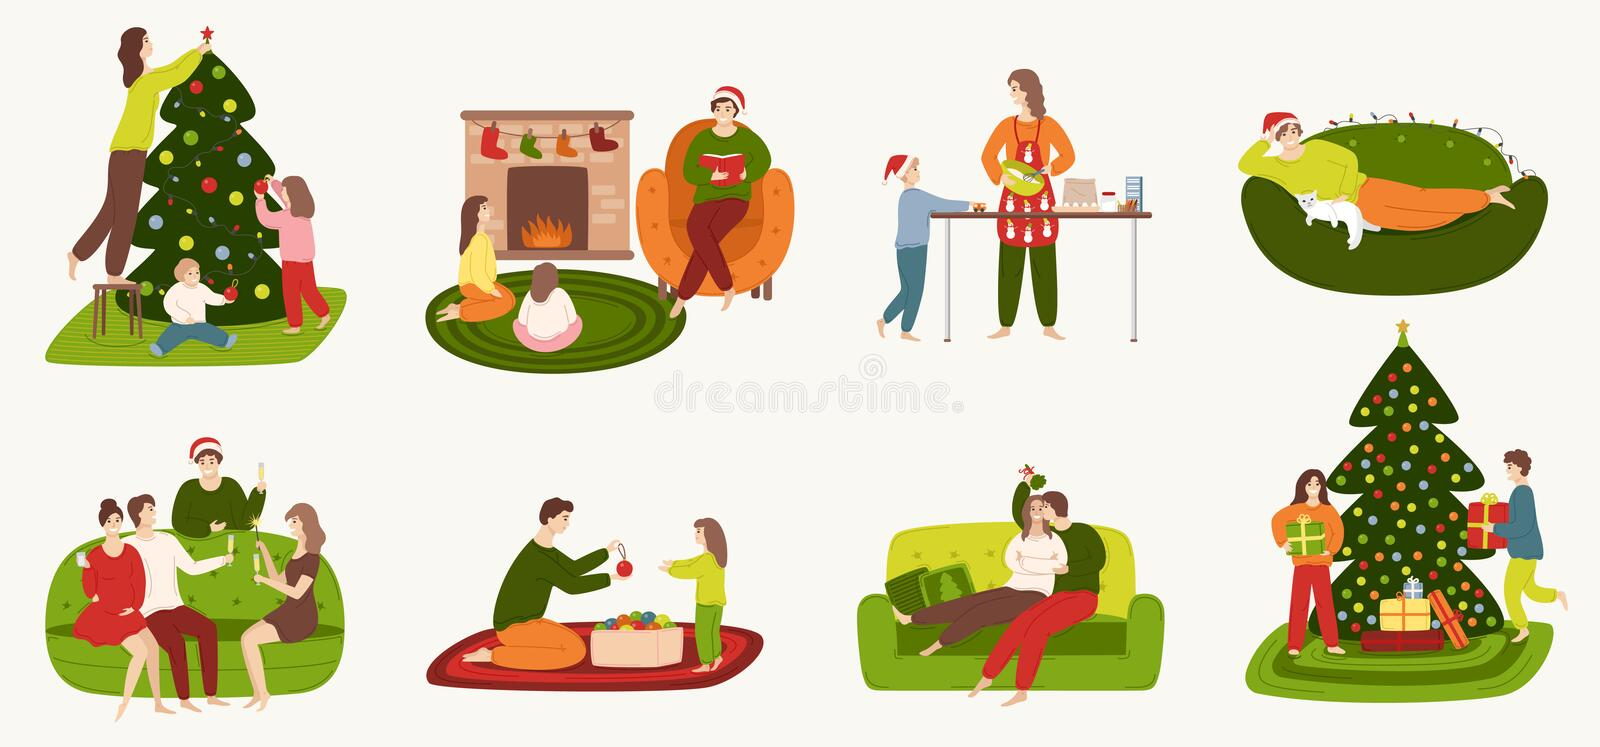 A set of people involved in preparing for the winter holidays and resting at home. vector illustration